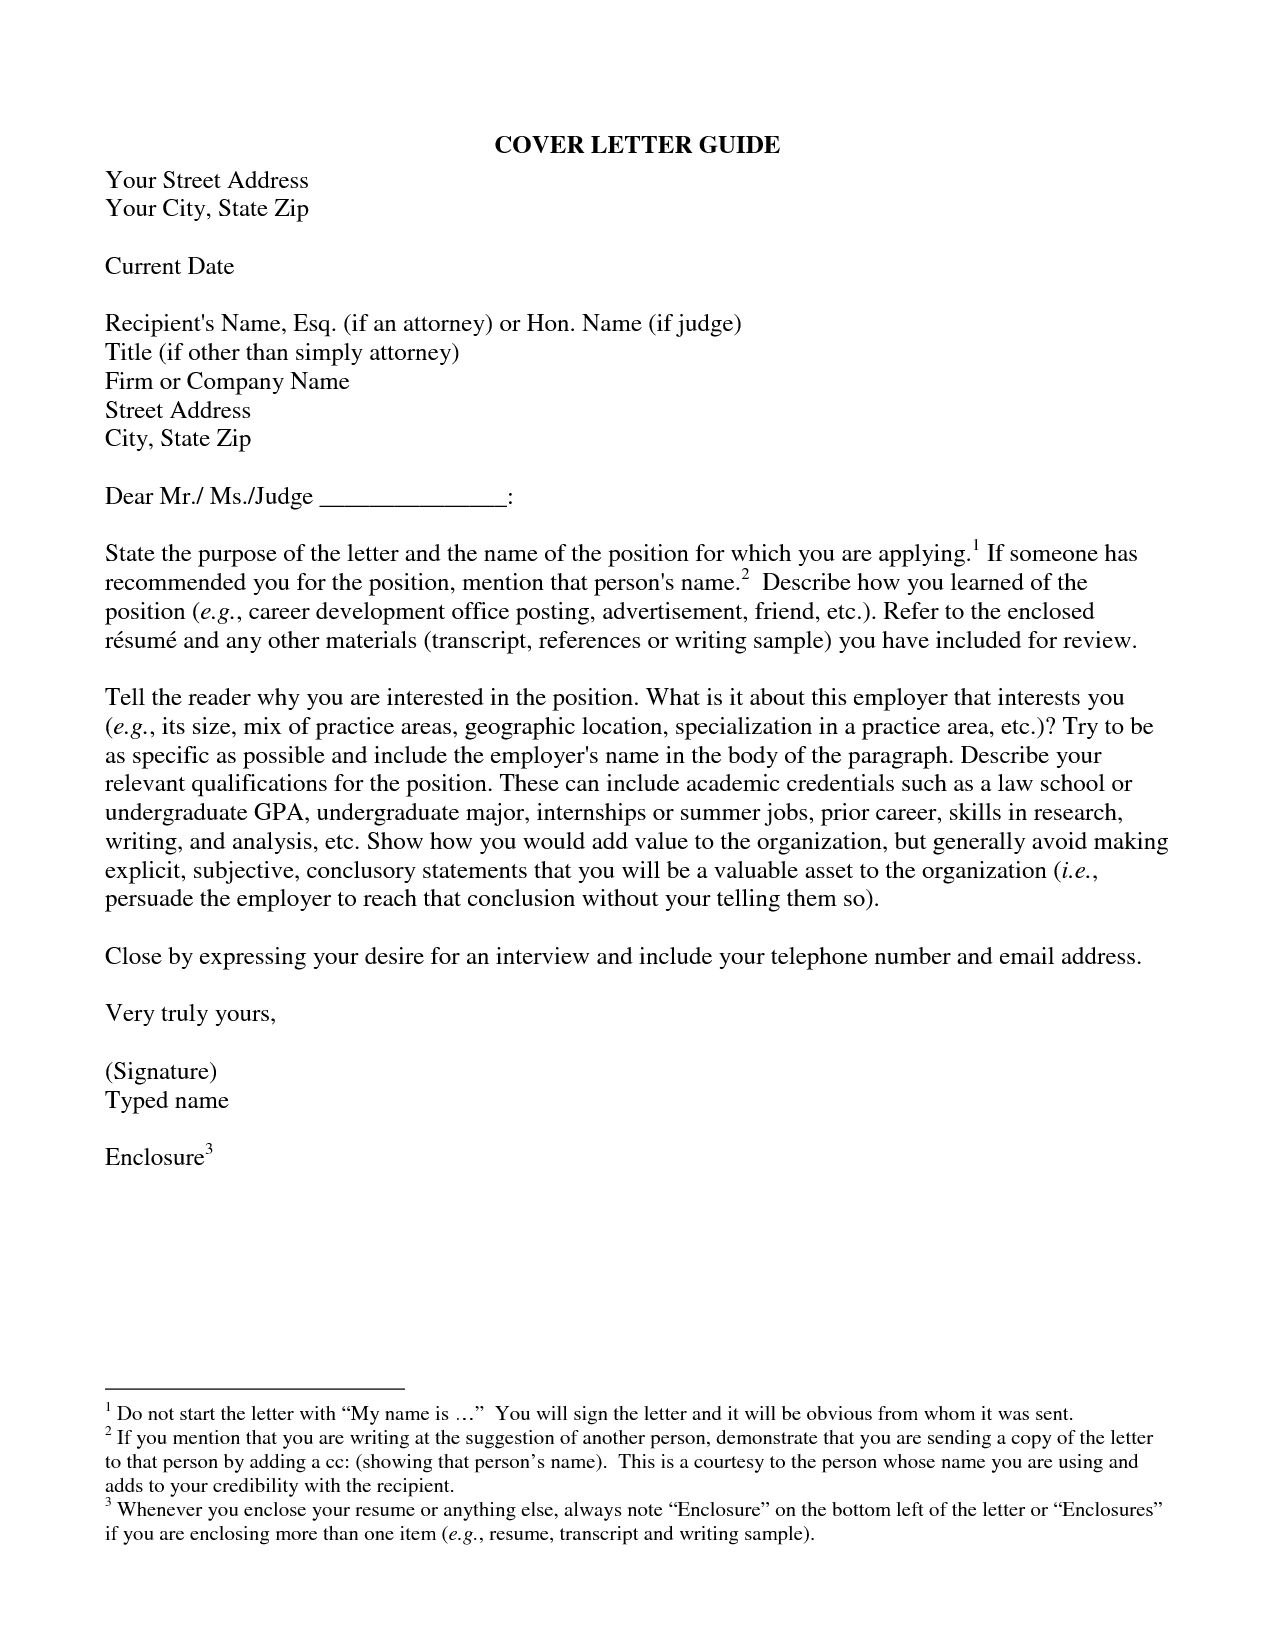 Solicited Cover Letter Sample The Best Application For Accountant